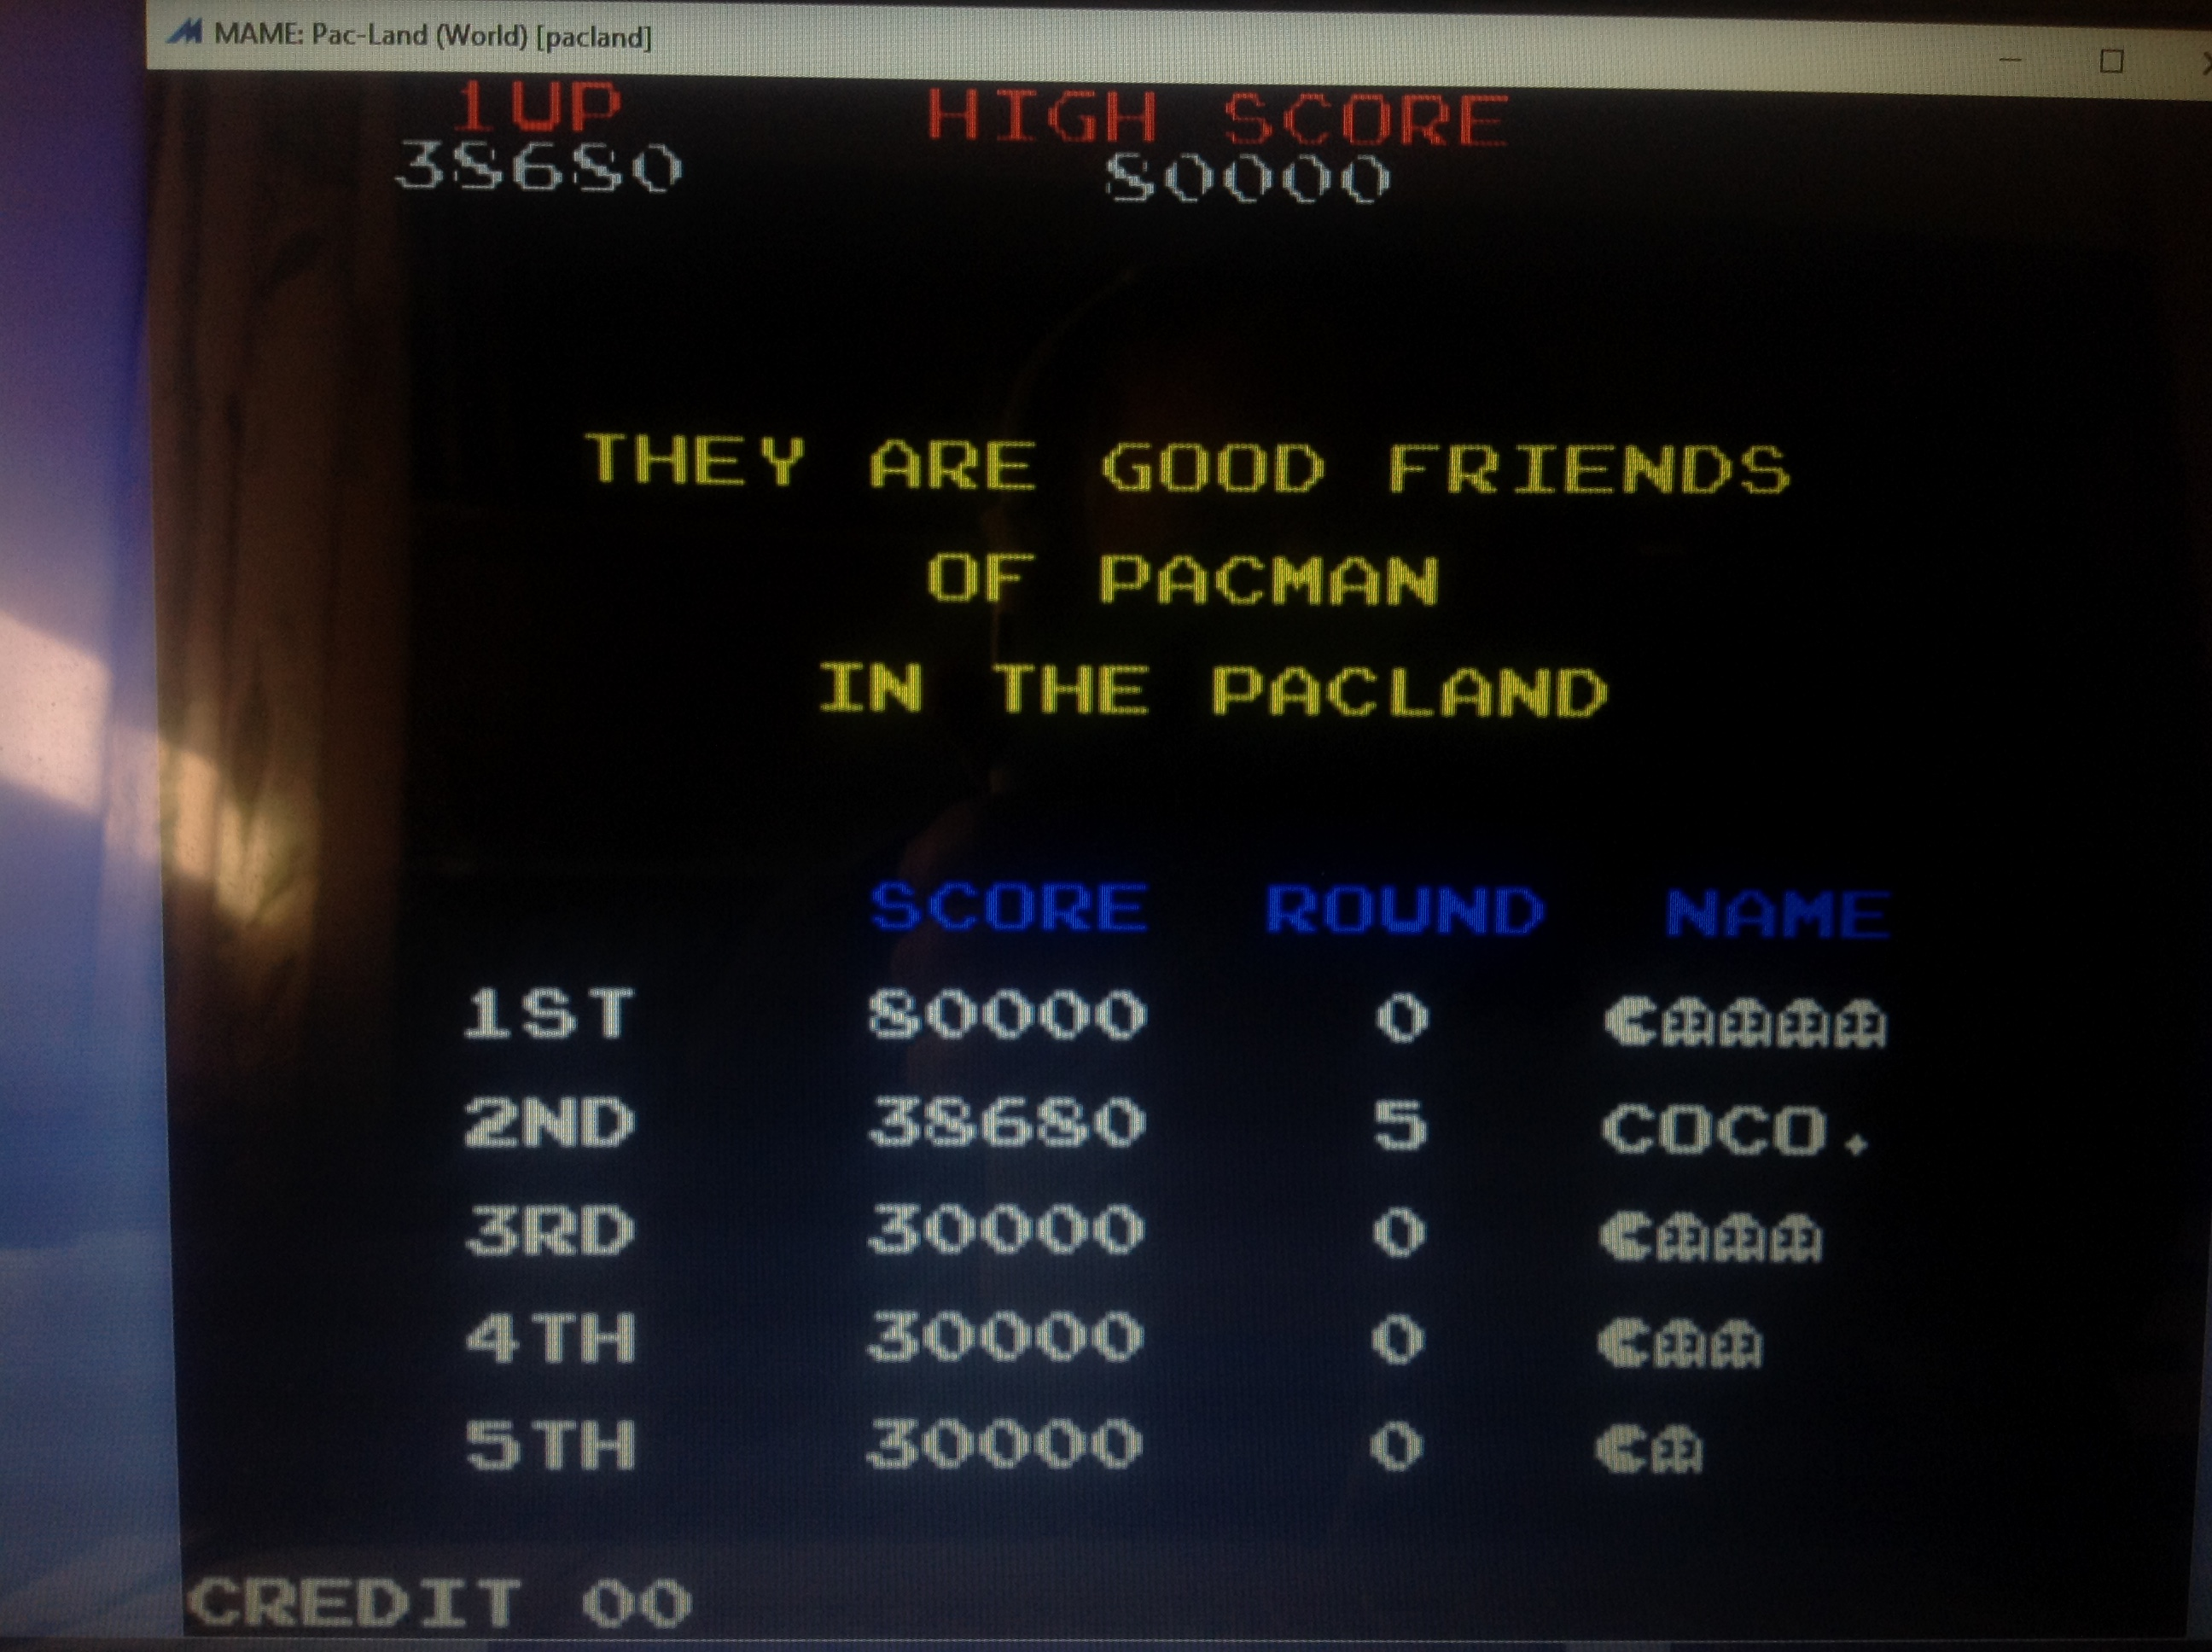 CoCoForest: Pac-Land (Arcade Emulated / M.A.M.E.) 38,680 points on 2018-02-01 06:05:49